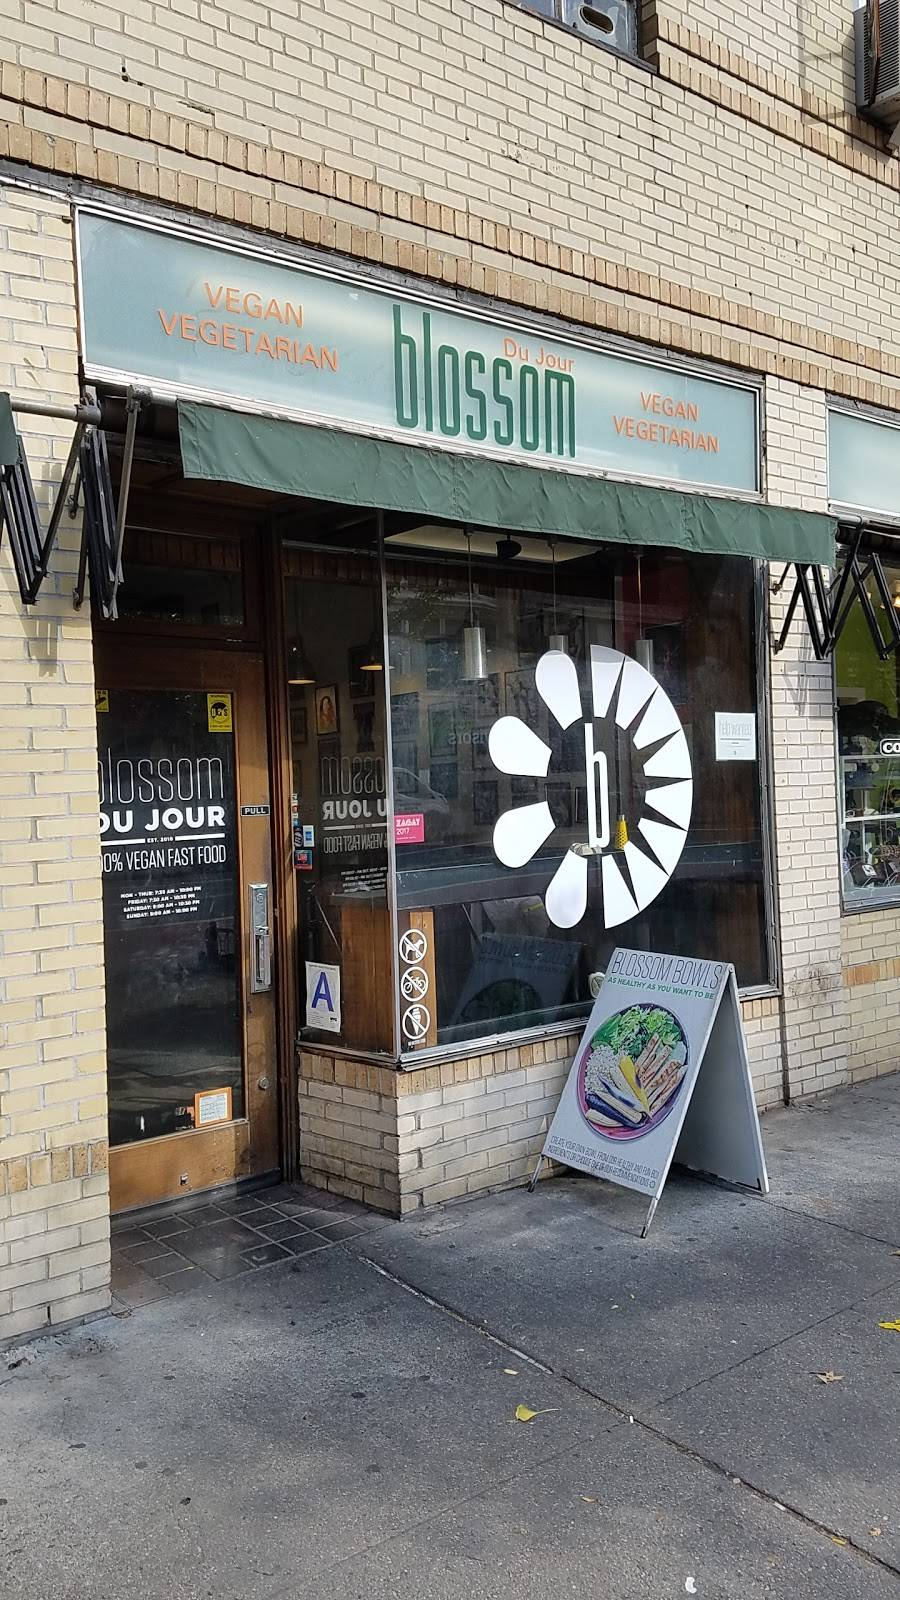 Blossom Du Jour | restaurant | 259 W 23rd St, New York, NY 10011, USA | 2122292595 OR +1 212-229-2595